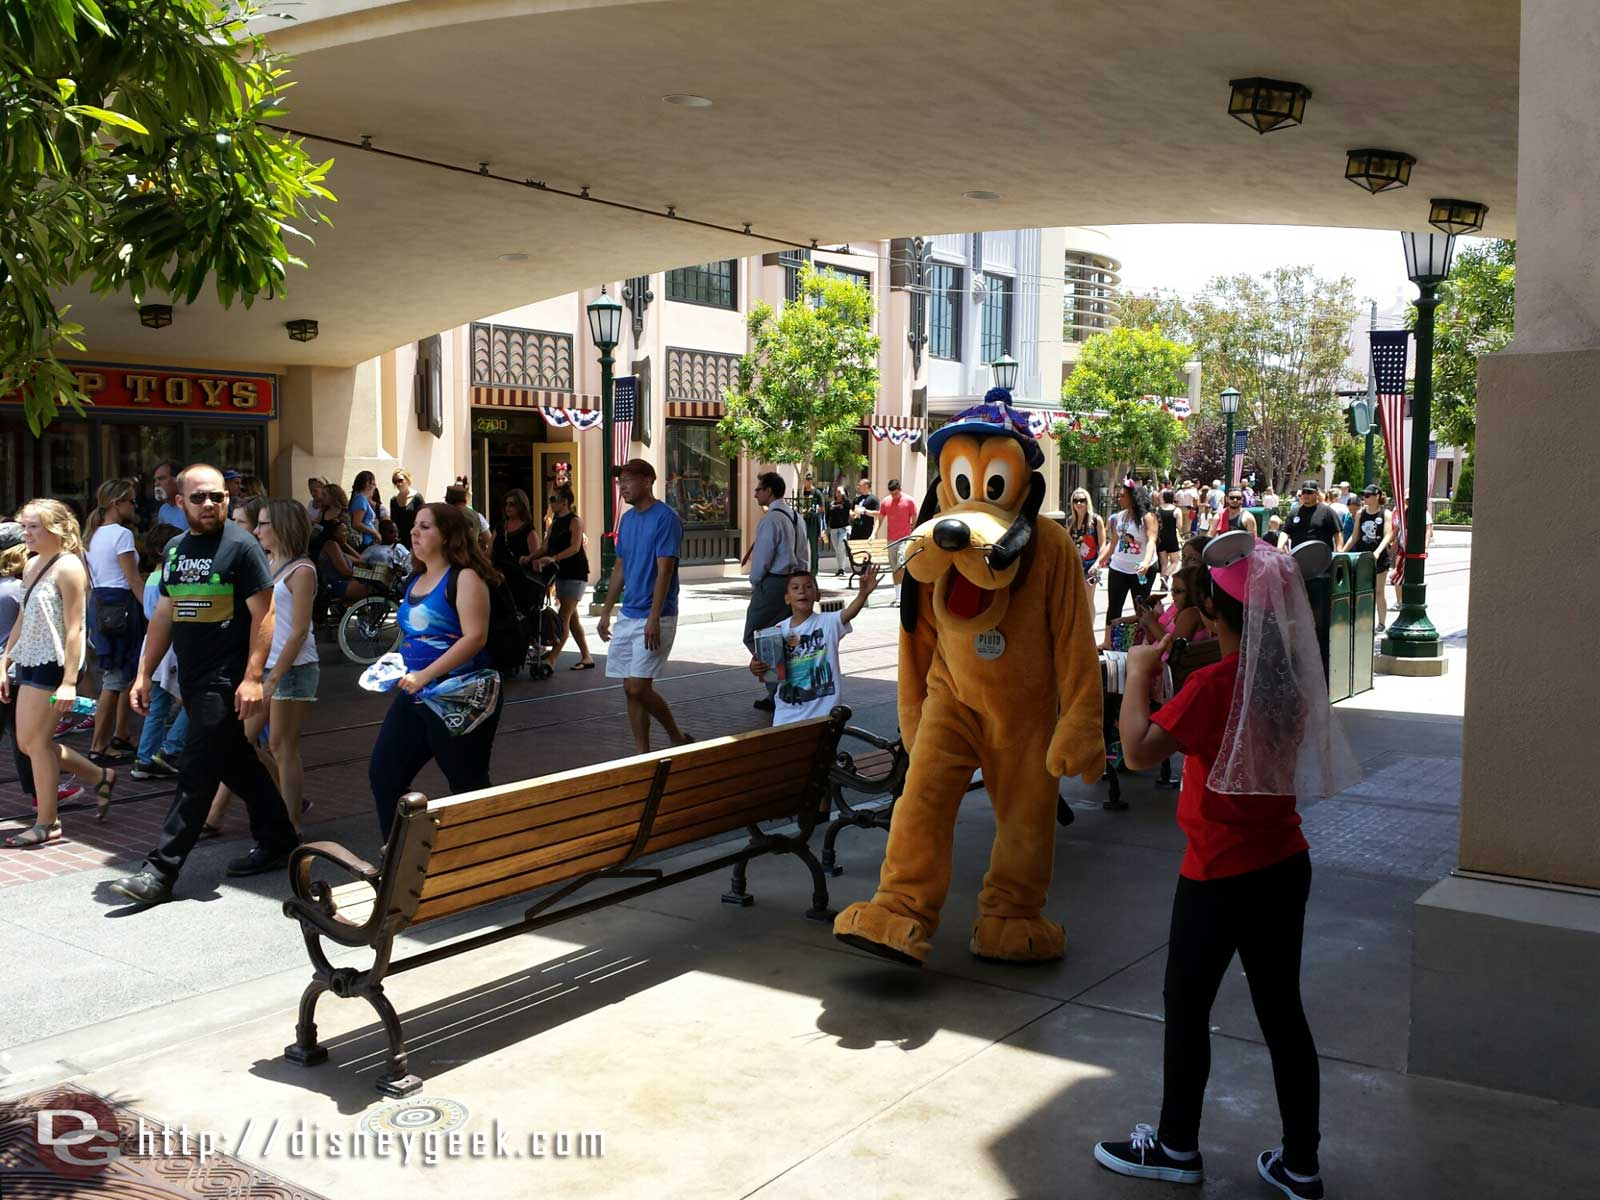 Pluto strolling by on #BuenaVistaStreet